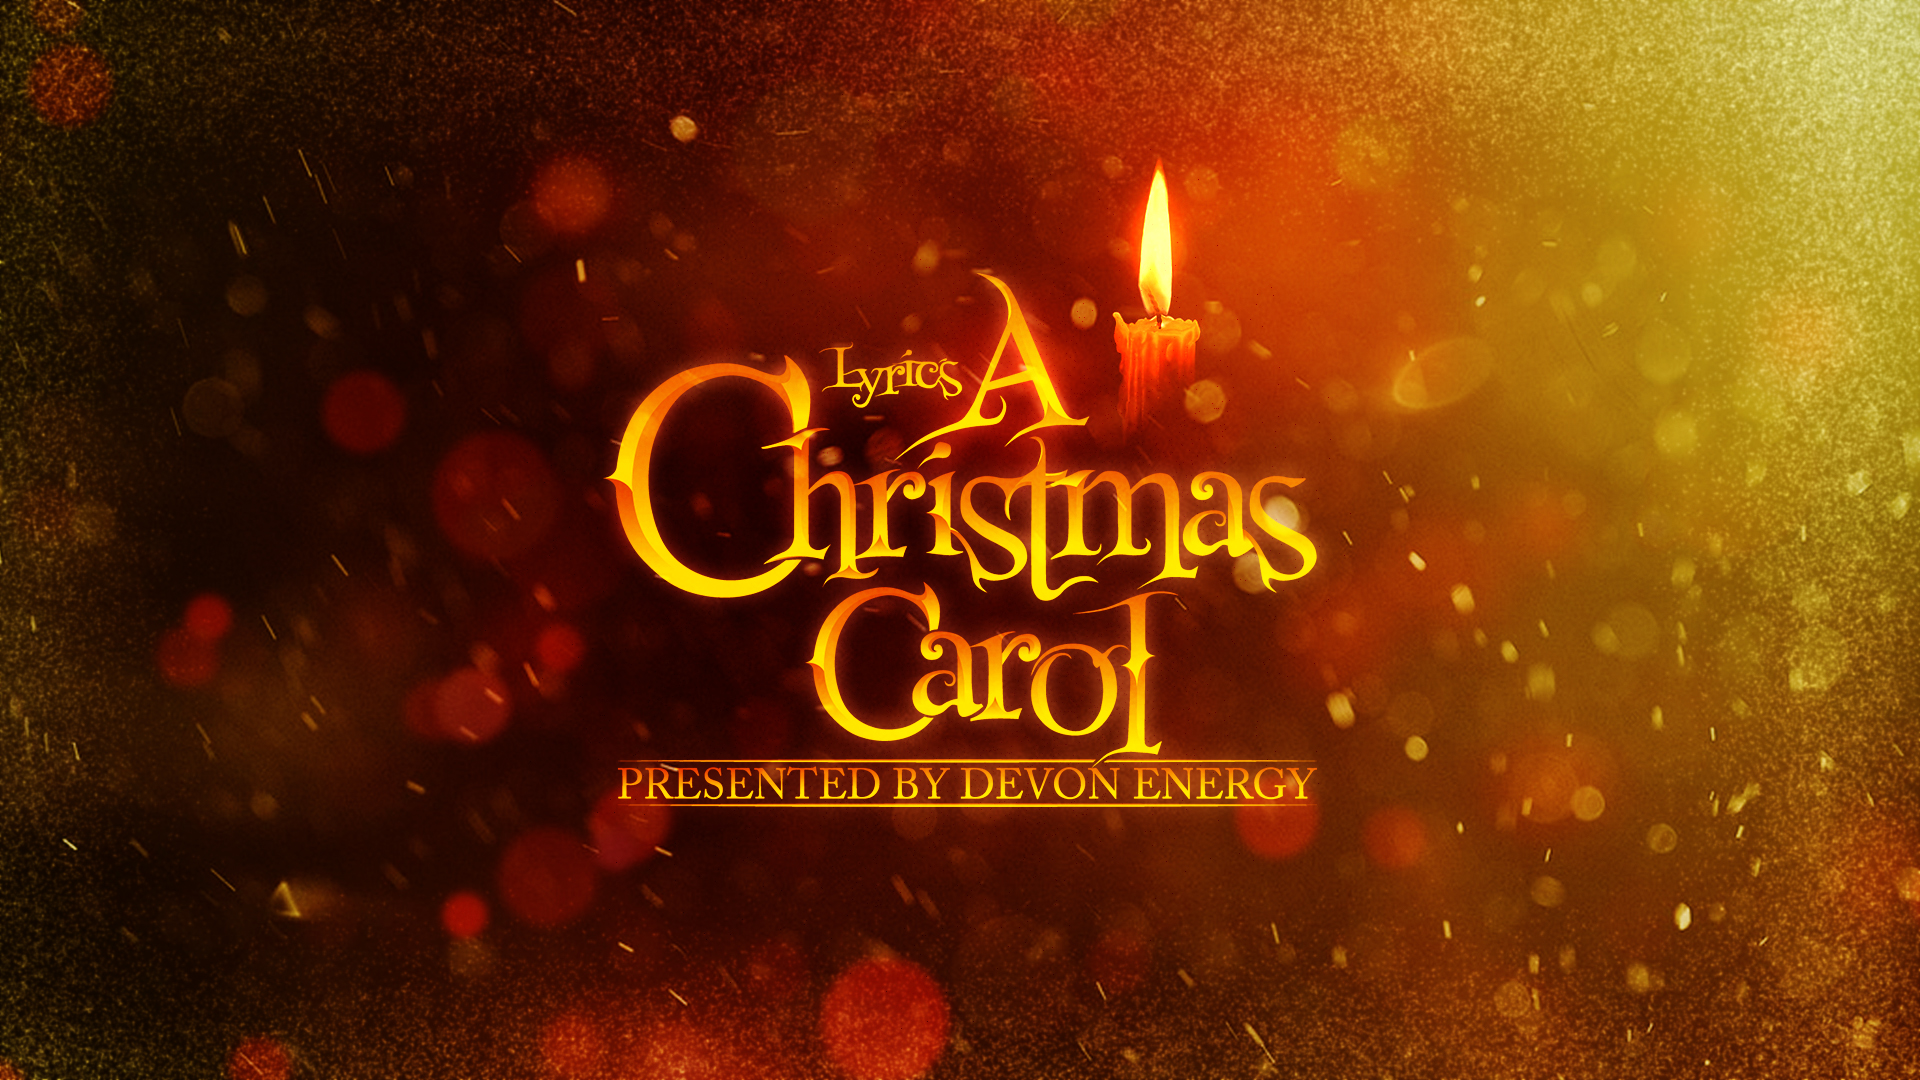 Christmas Graphics 2019.Lyric S A Christmas Carol 2019